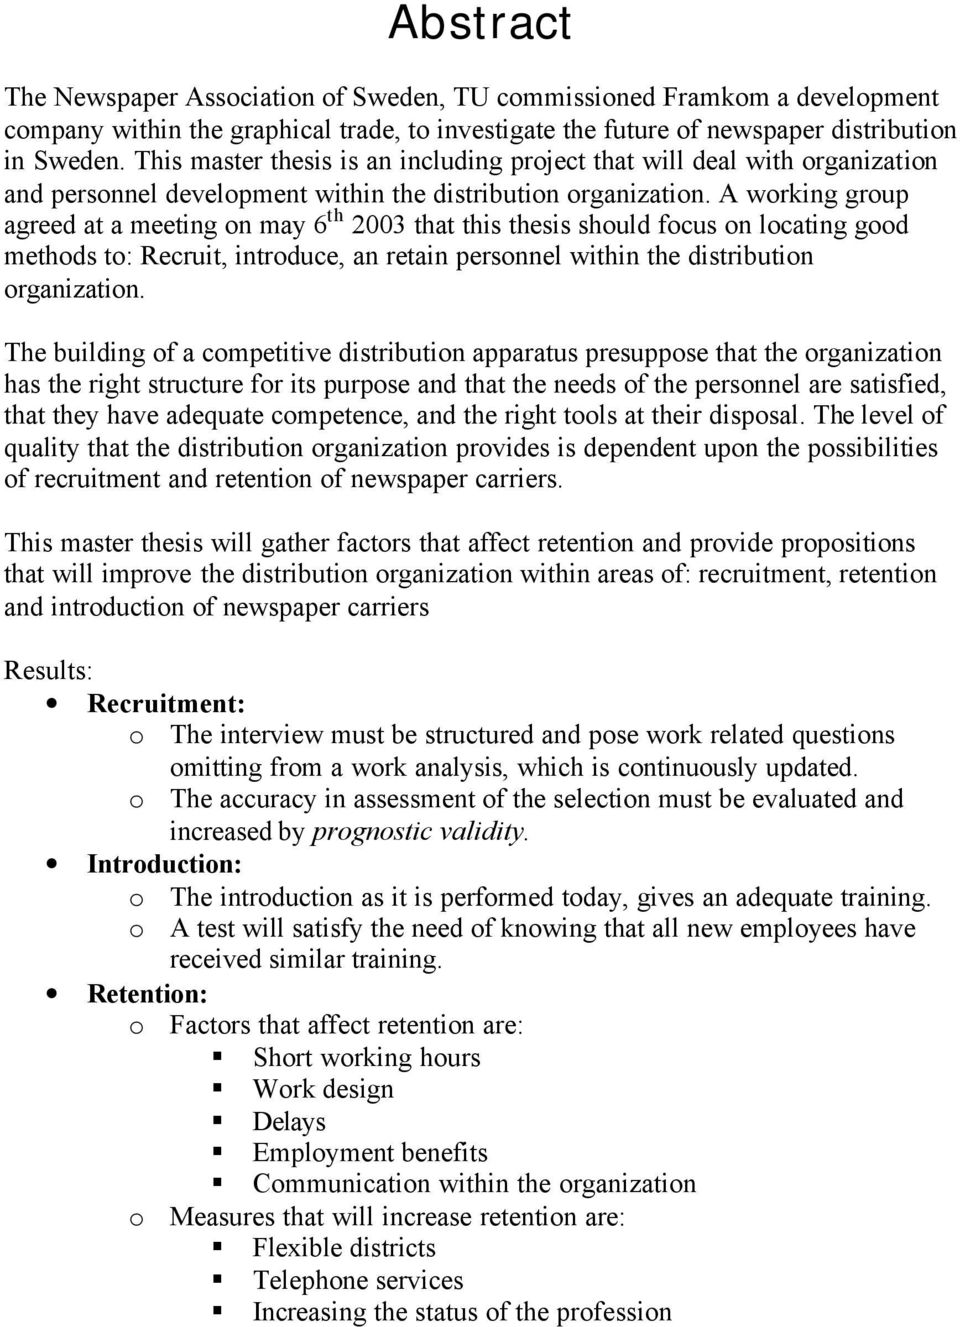 A working group agreed at a meeting on may 6 th 2003 that this thesis should focus on locating good methods to: Recruit, introduce, an retain personnel within the distribution organization.